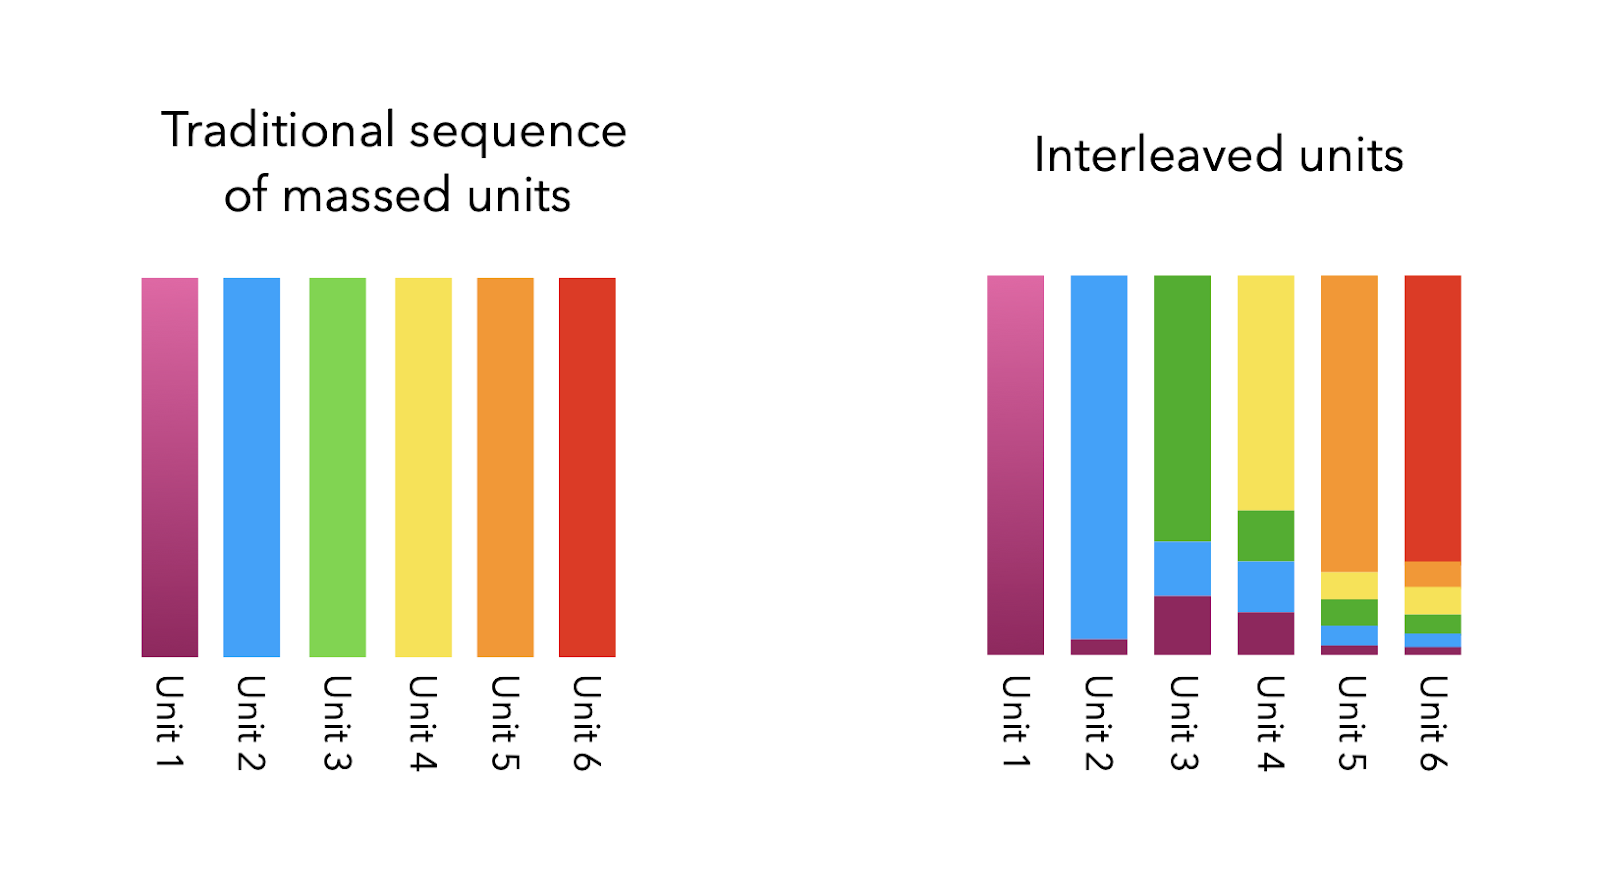 This image shows two charts, one showing the traditional sequence of massed units, and the second showing the sequence of interleaved units.